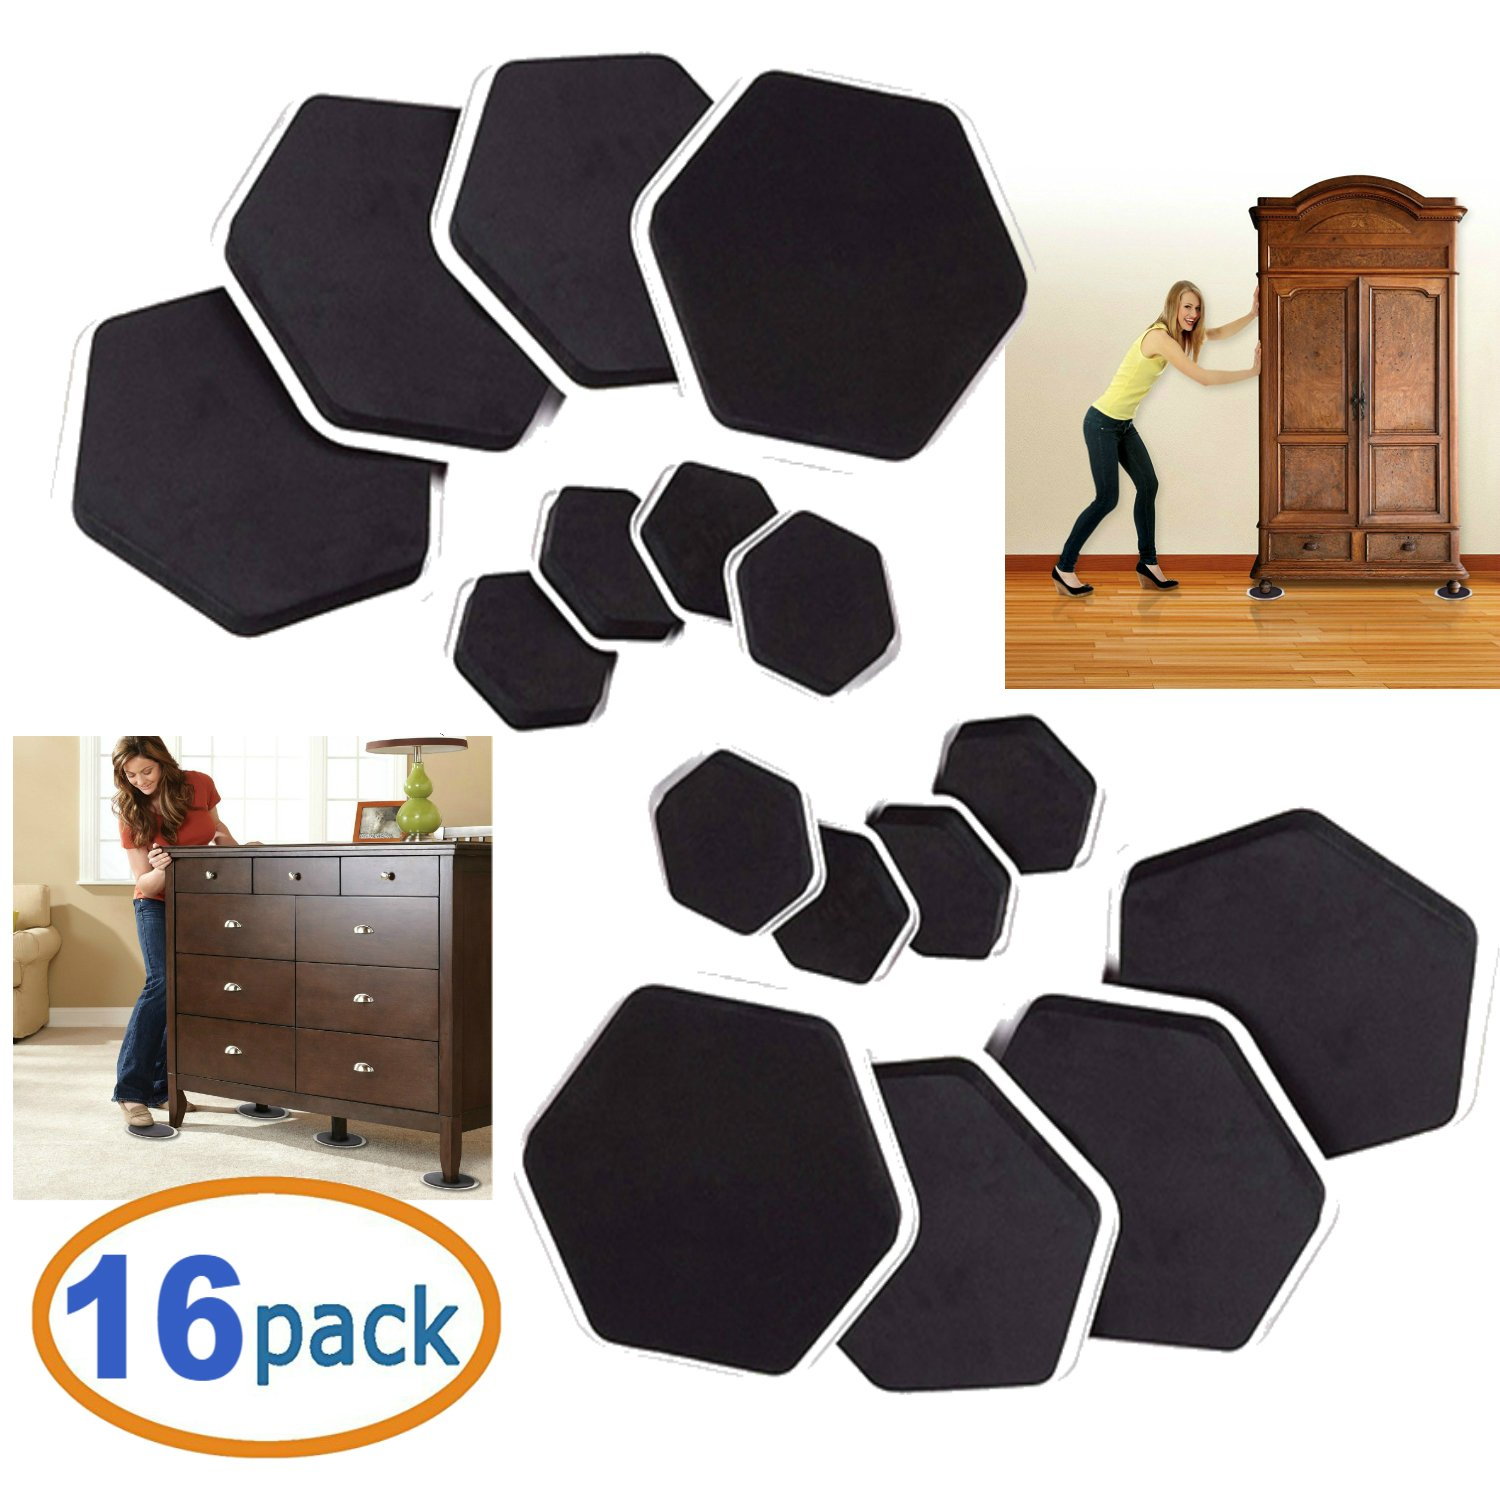 Furniture Moving Sliders and Feet Pads 16-Pc For Moving Furniture Gliders for Hardwood Floor Protectors Furniture Pads For Carpet Foam Grip Non Slip Floor Protectors For Furniture Legs